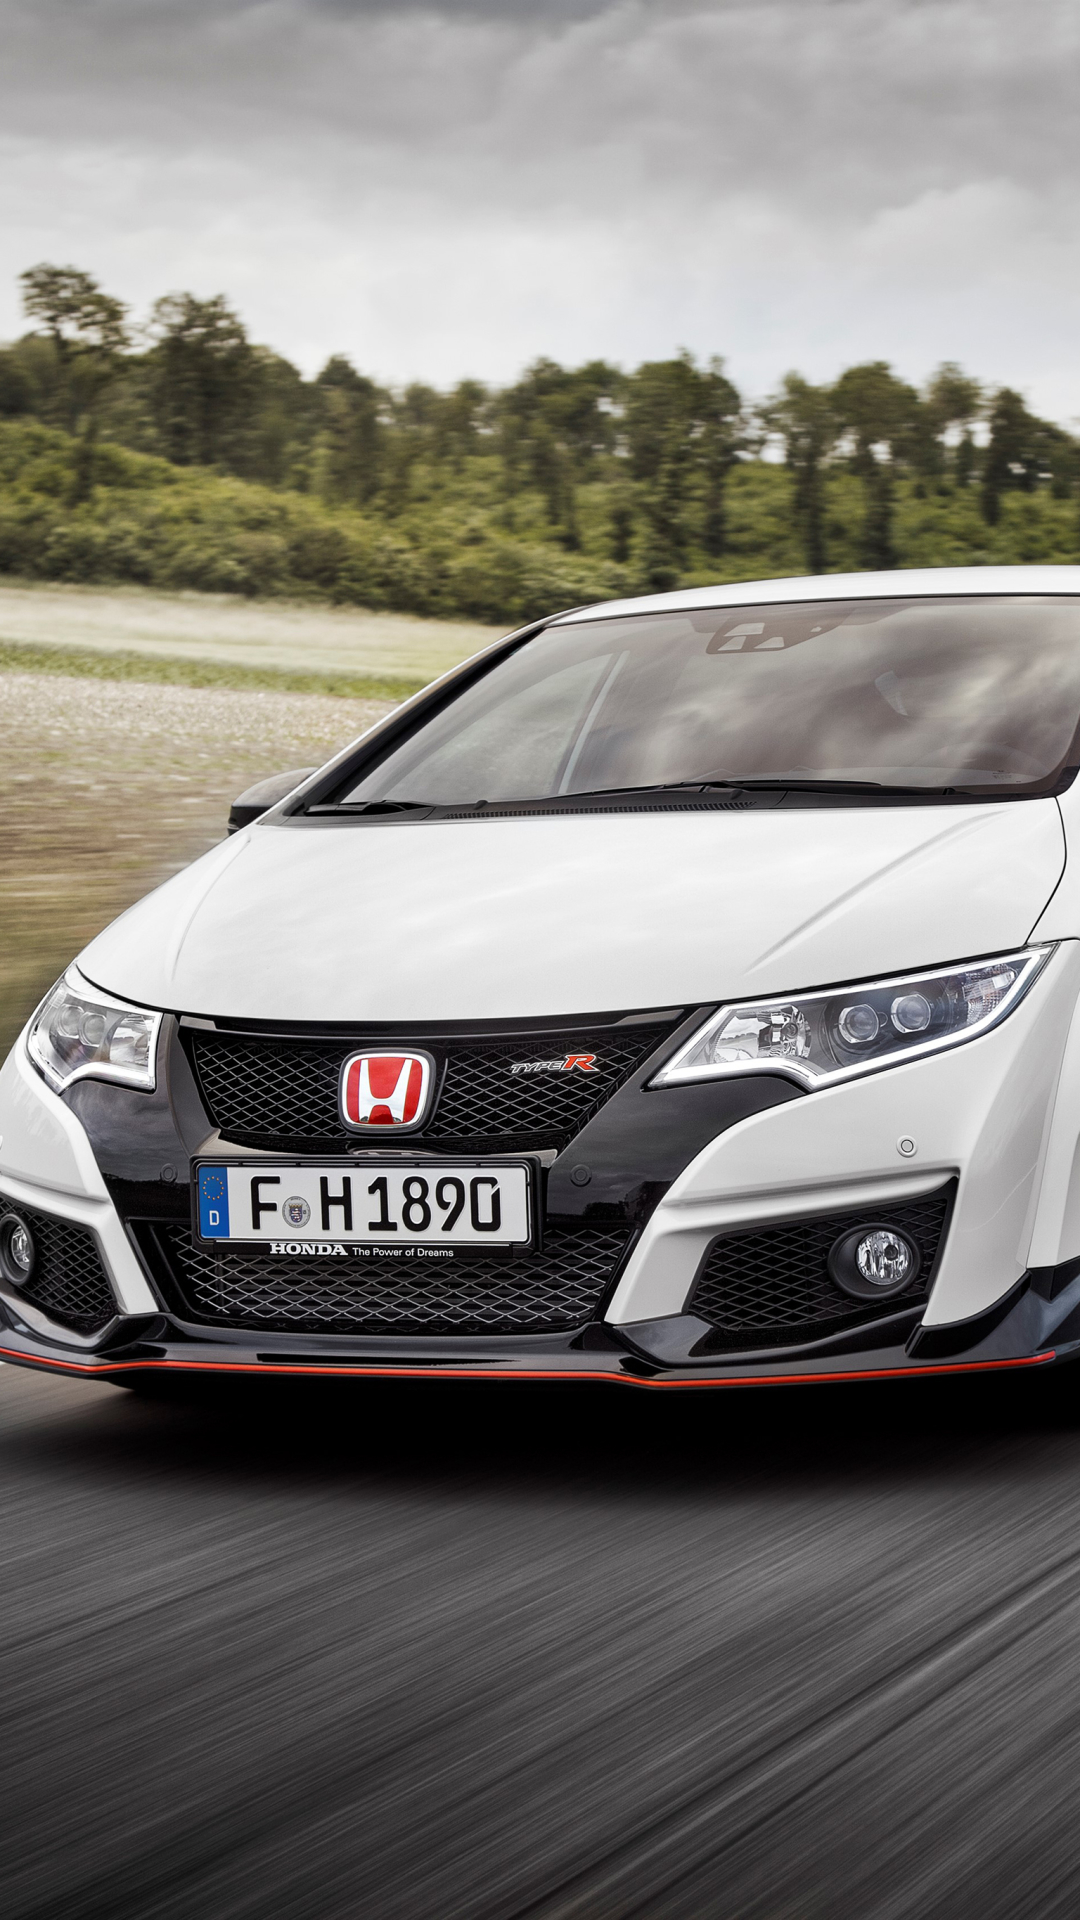 Honda Phone Wallpapers Vehicles Honda Civic Type R 1080x1920 Wallpaper Id 617116